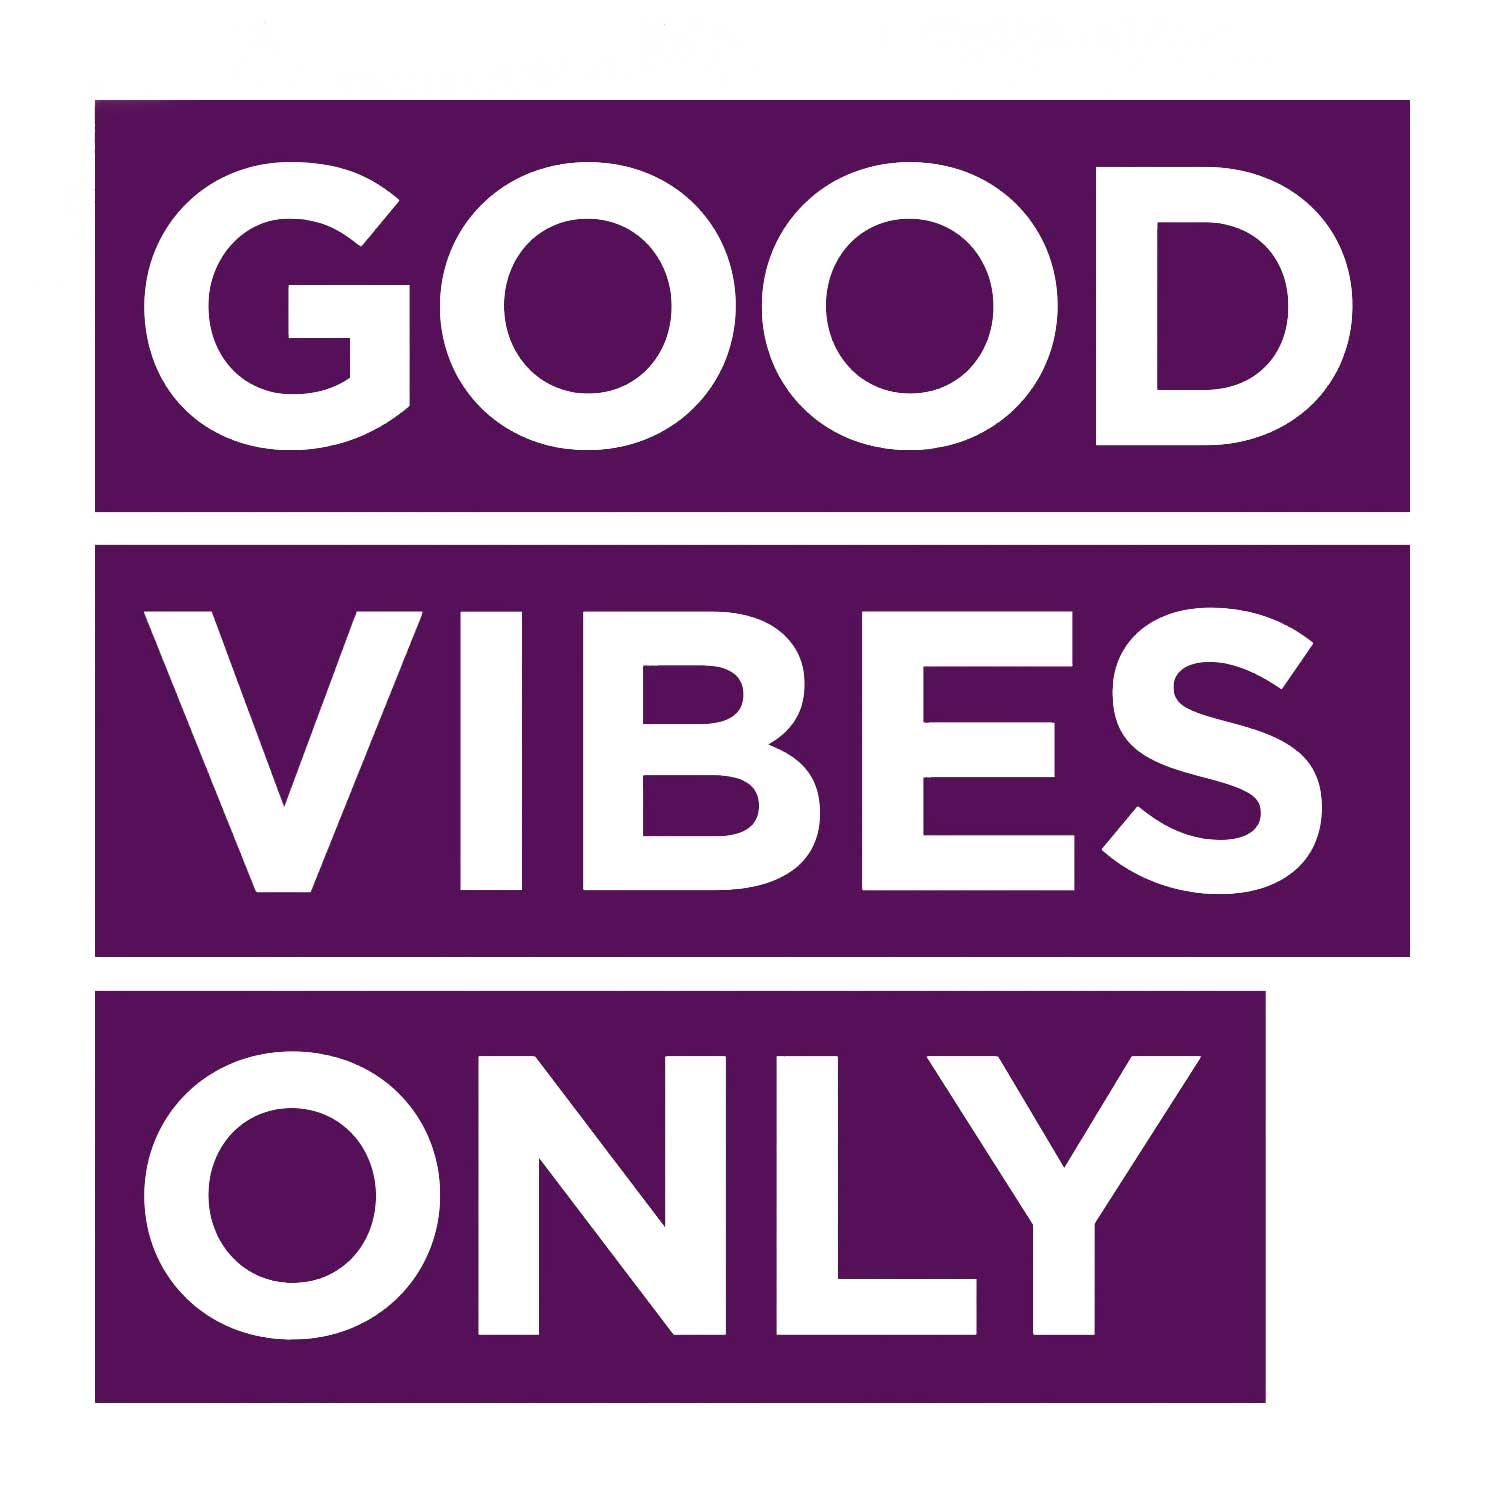 Good Vibes Only Decal - Violet Small